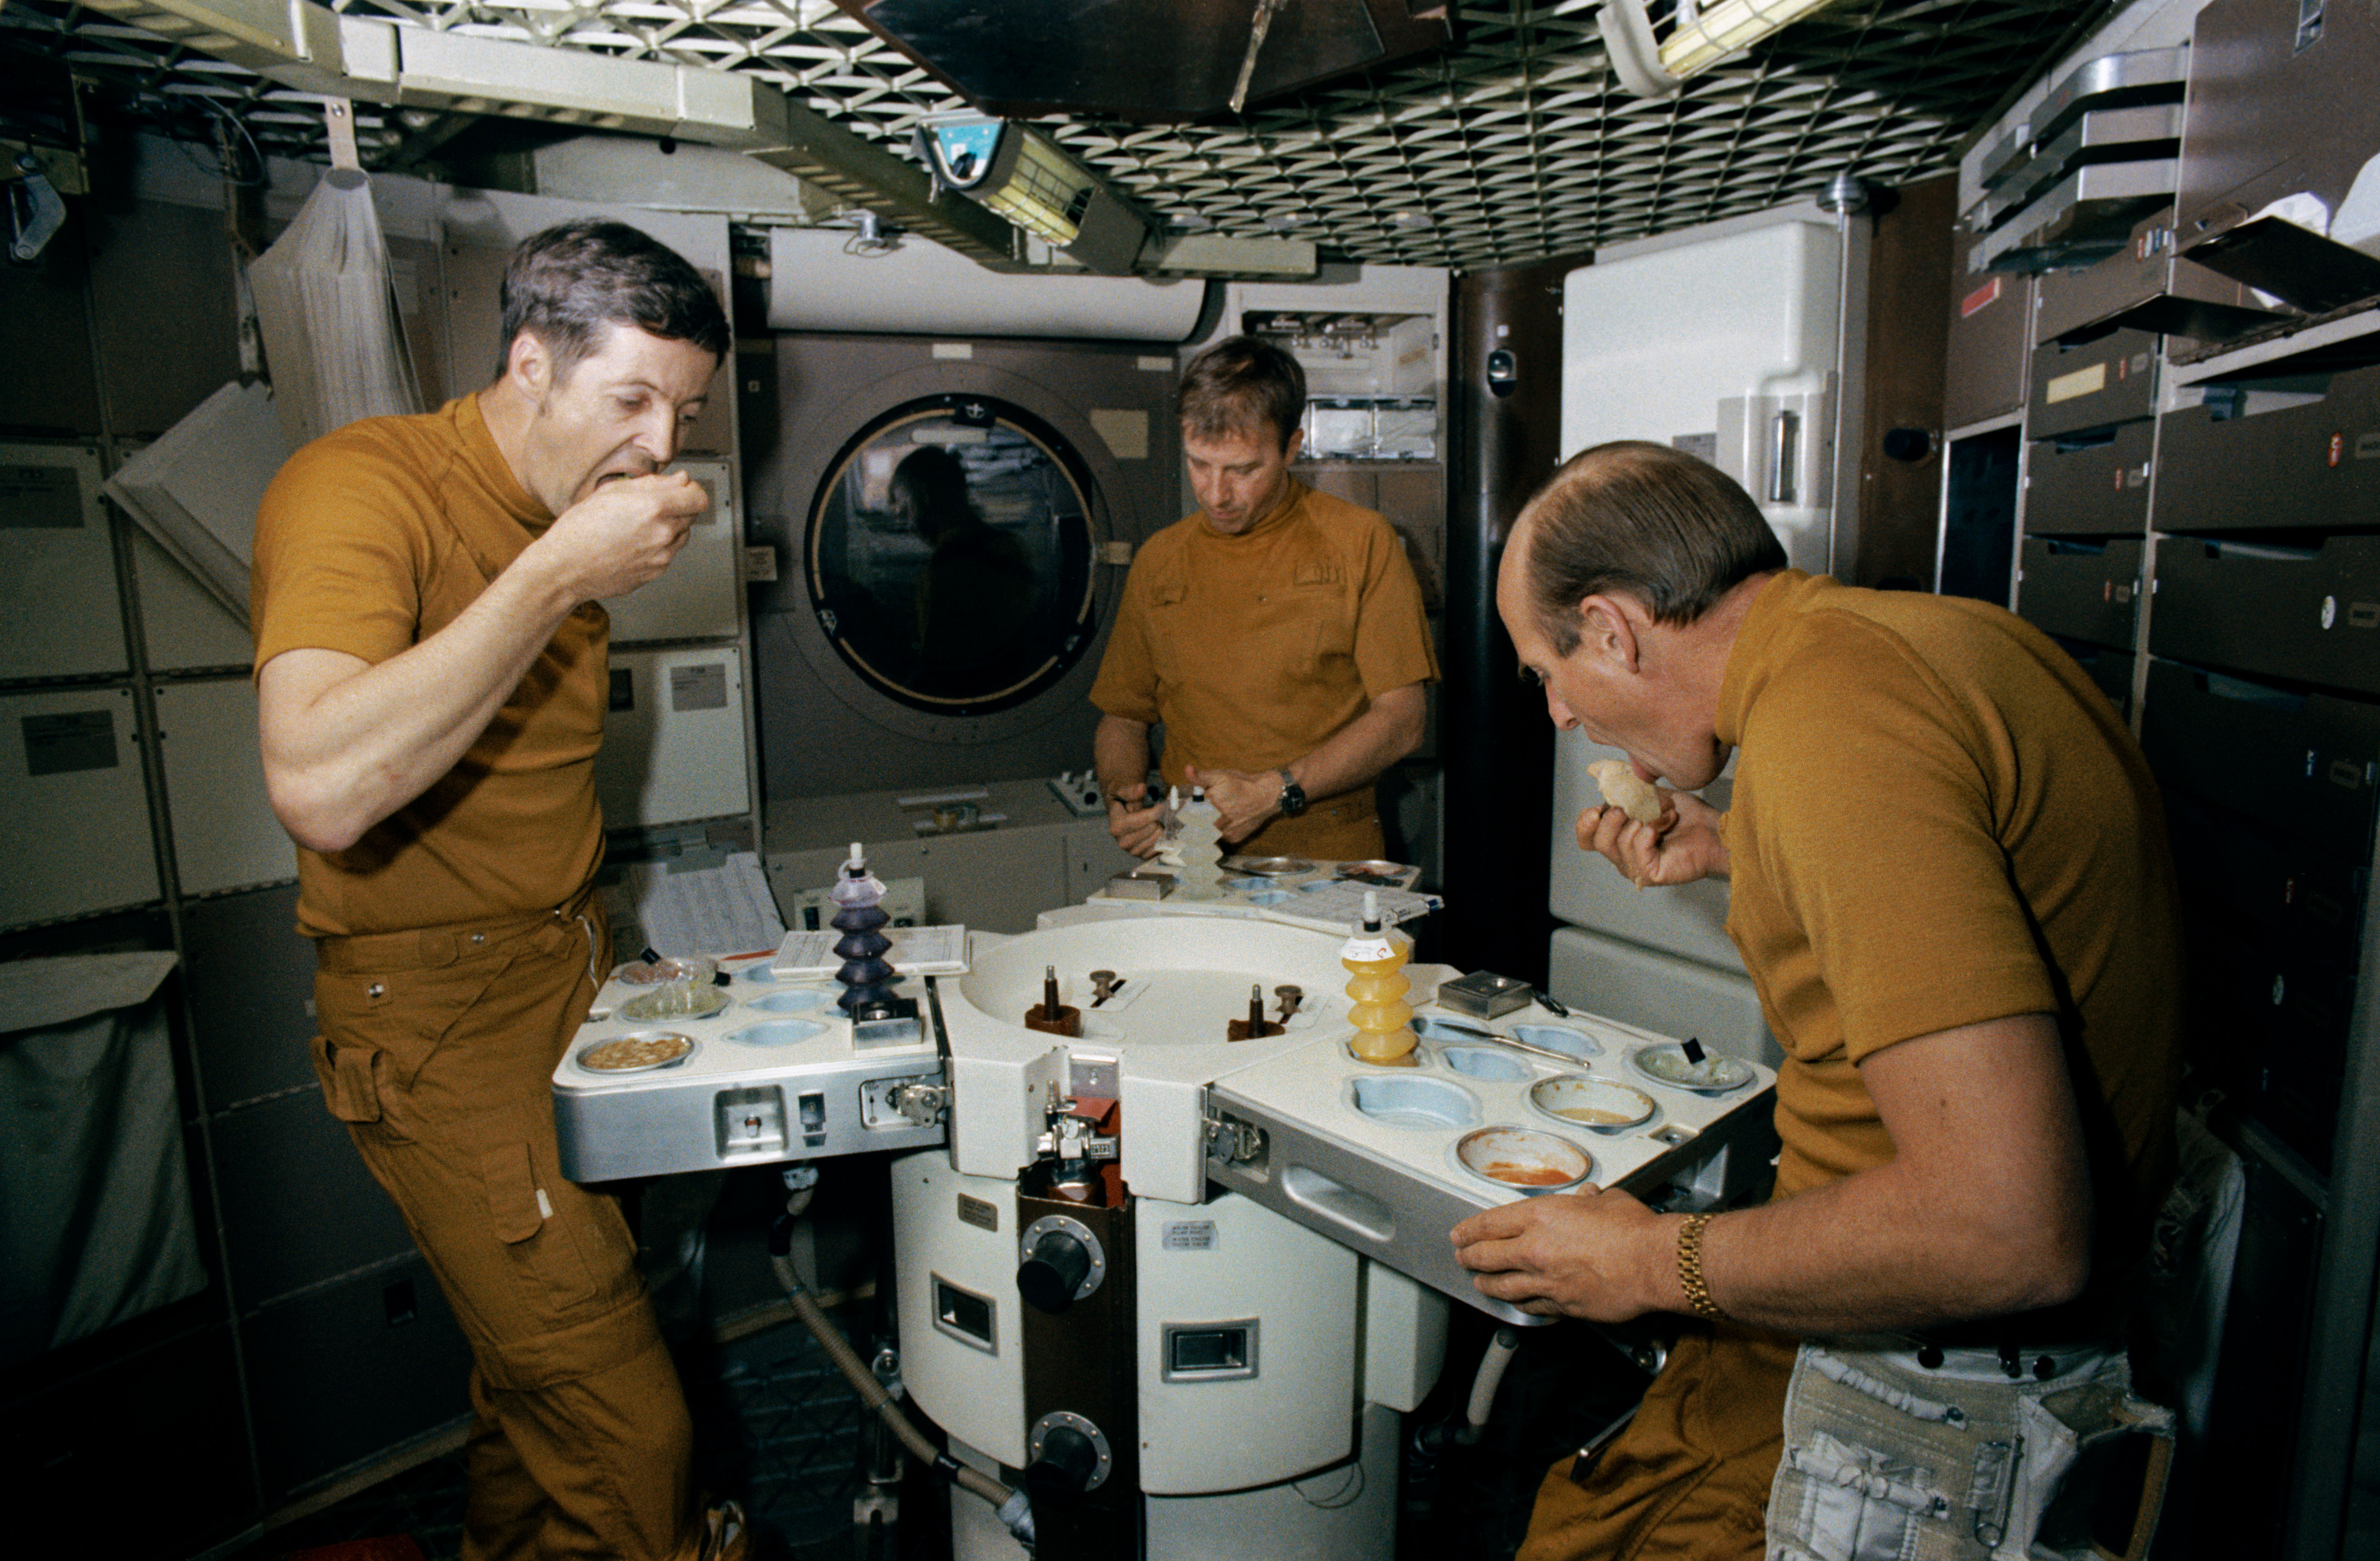 Skylab 2 astronauts eat space food in wardroom of Skylab trainer | Astronaut Chow: Space Food over the Years